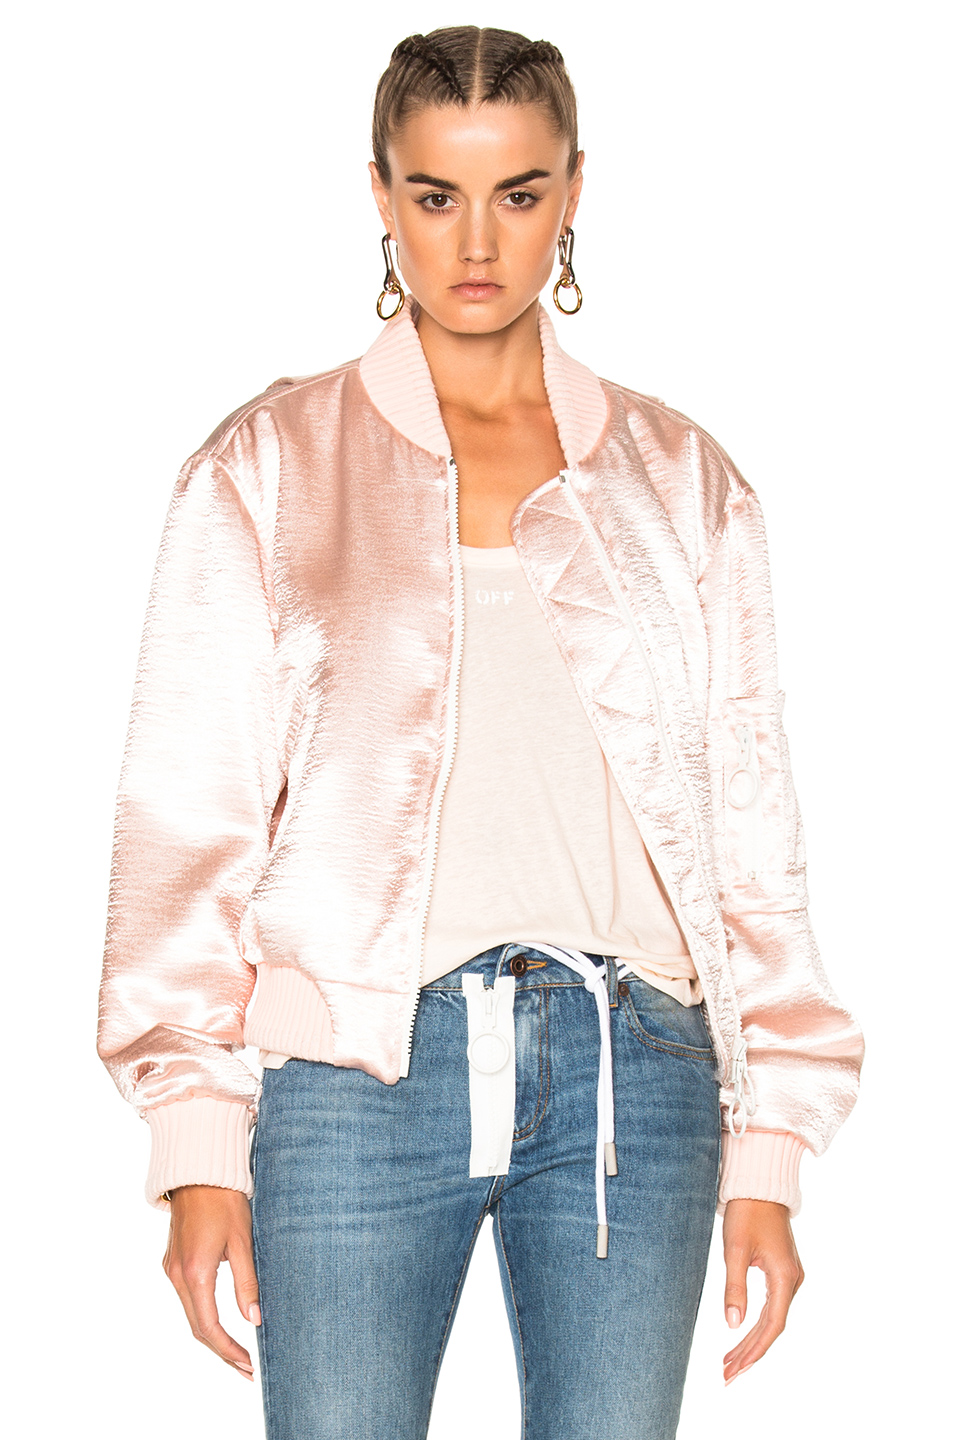 OFF-WHITE for FWRD Shiny Bomber Jacket in Pink